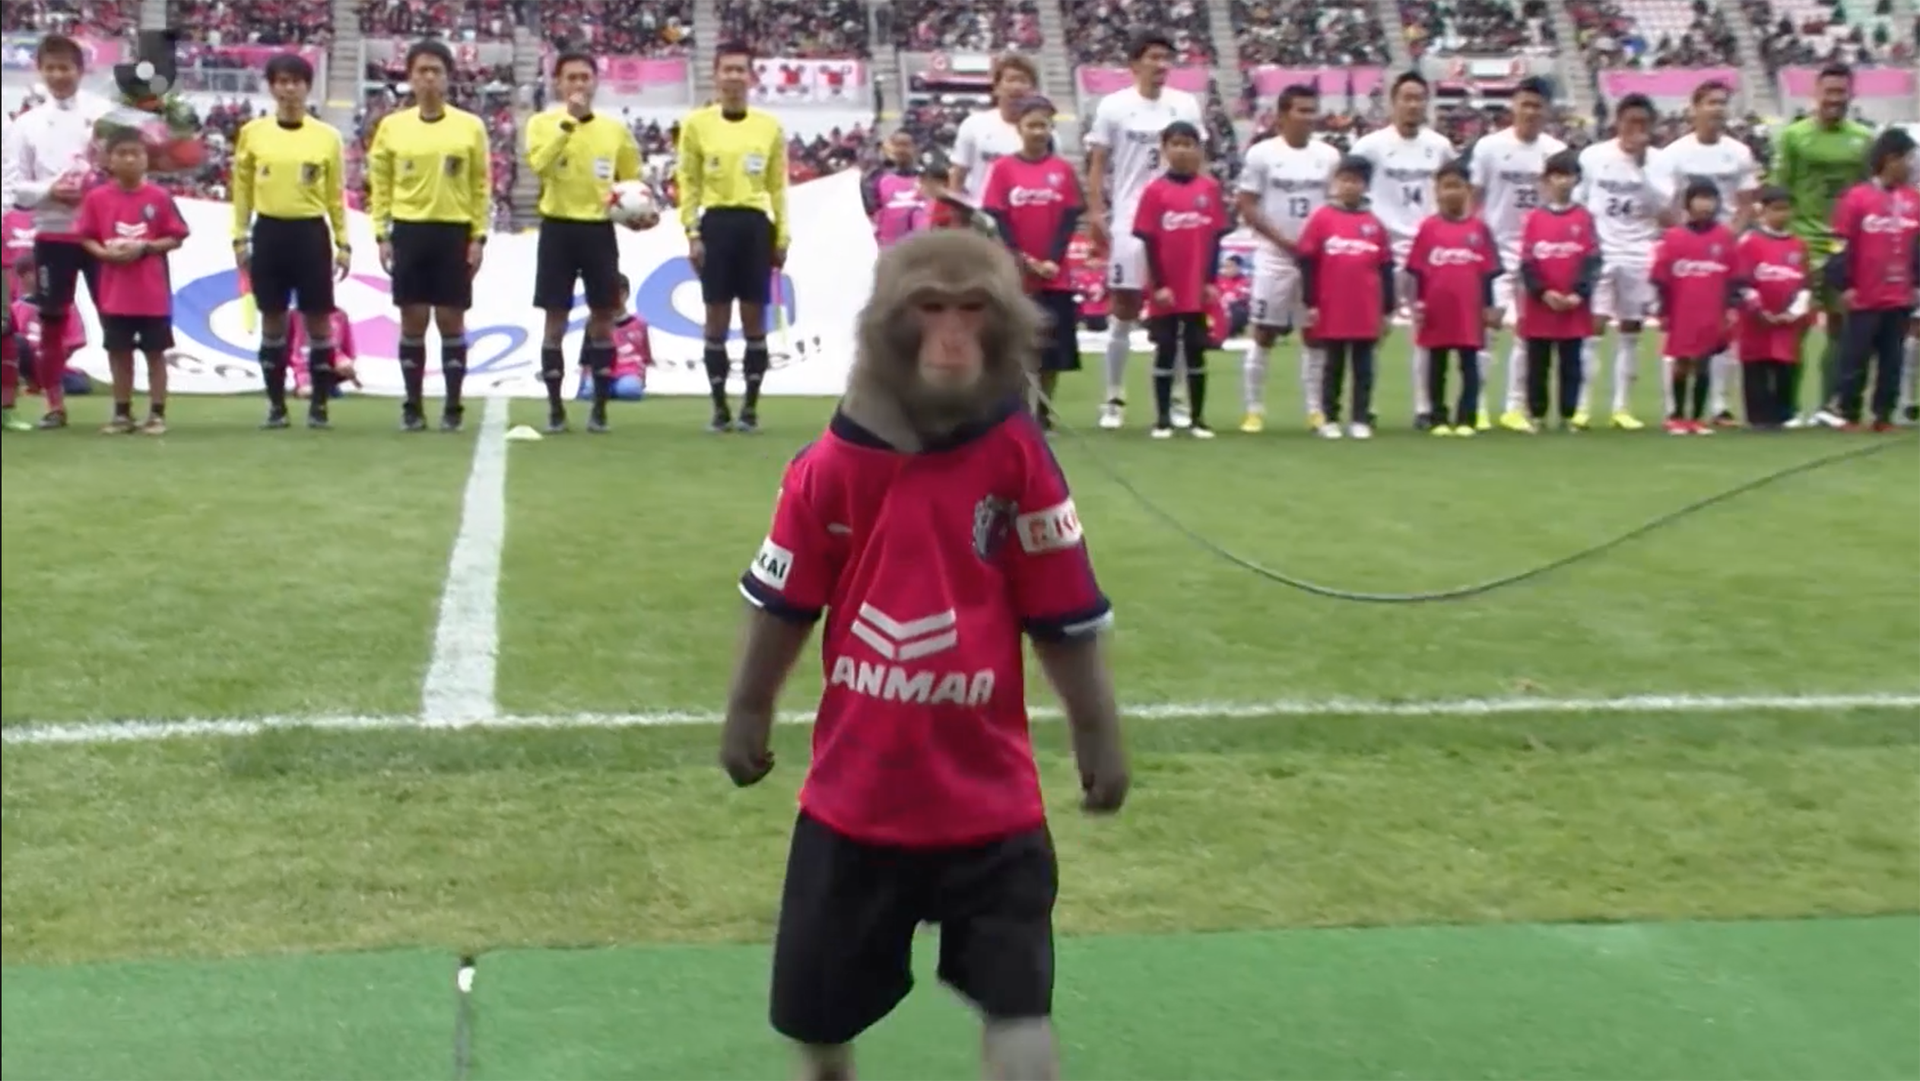 PETA condemns Japanese club for using monkey to kick off match